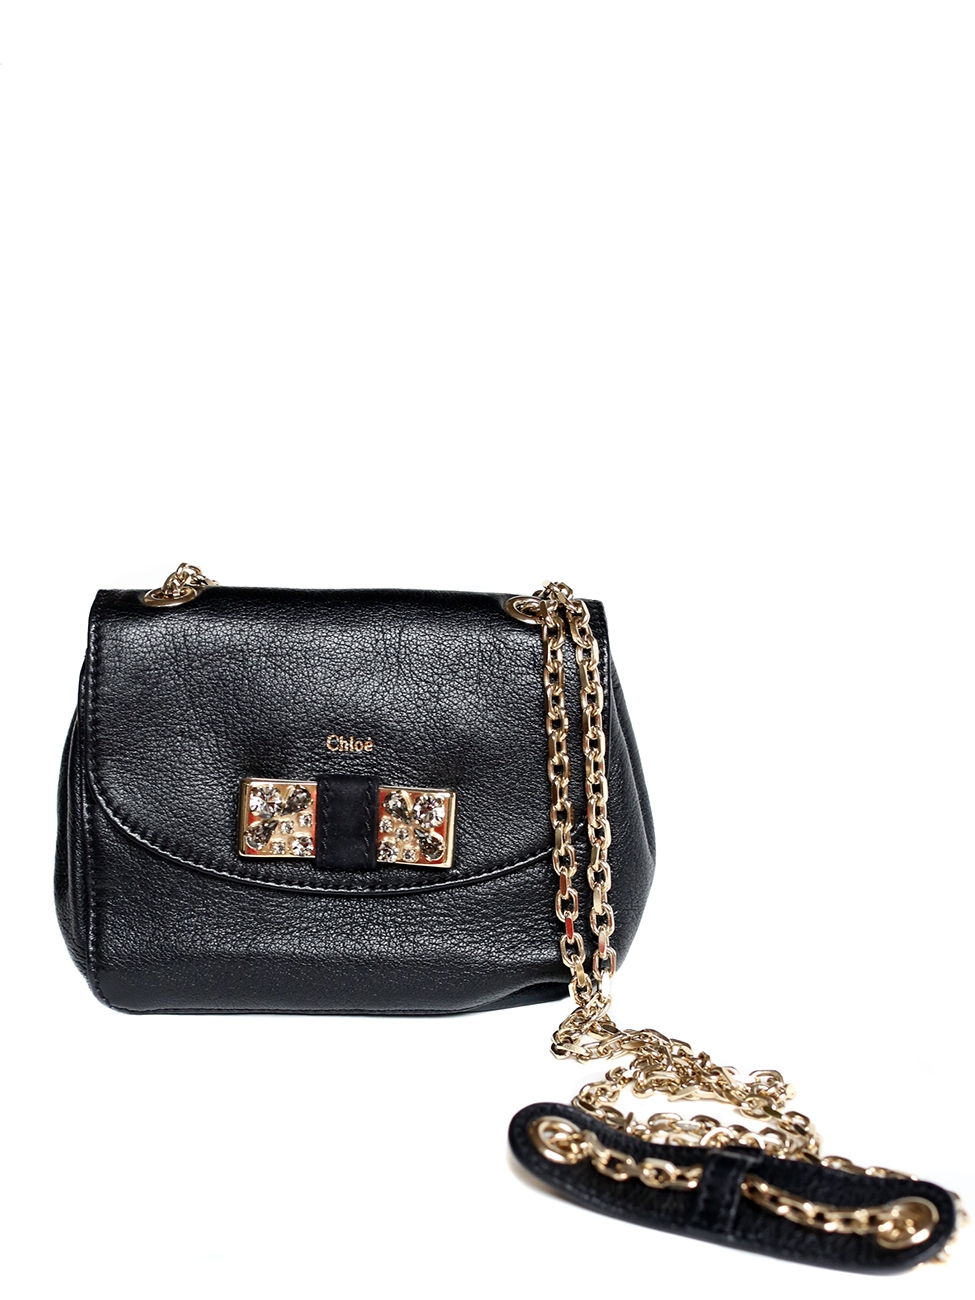 Black leather Lily mini cross body bag with a swarovski crystals embellished bow Retail price 550€